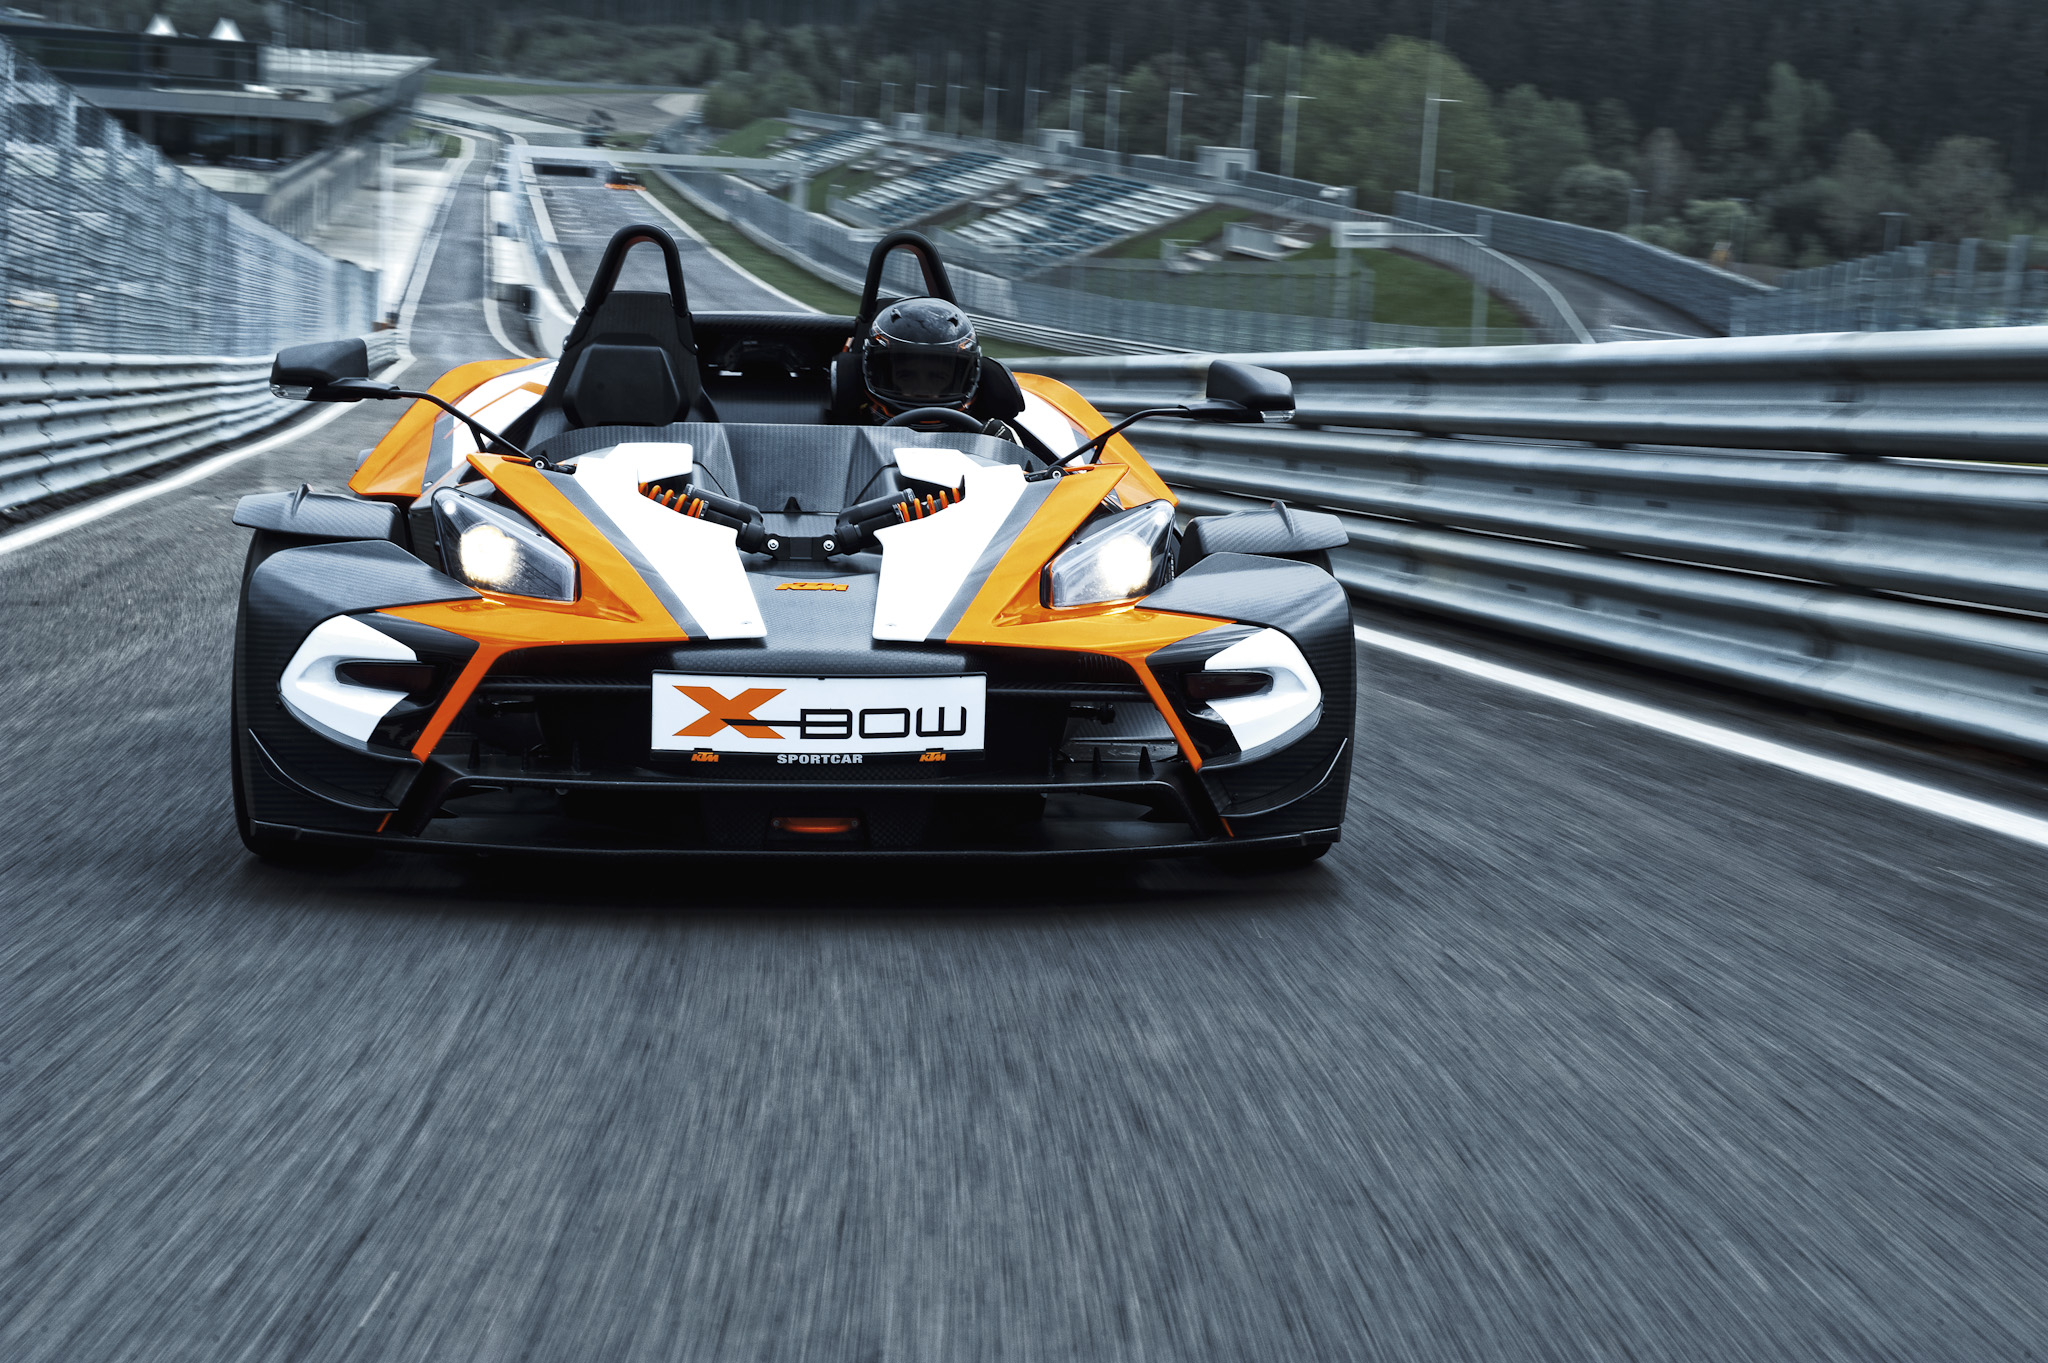 2011 ktm x bow r launched. Black Bedroom Furniture Sets. Home Design Ideas